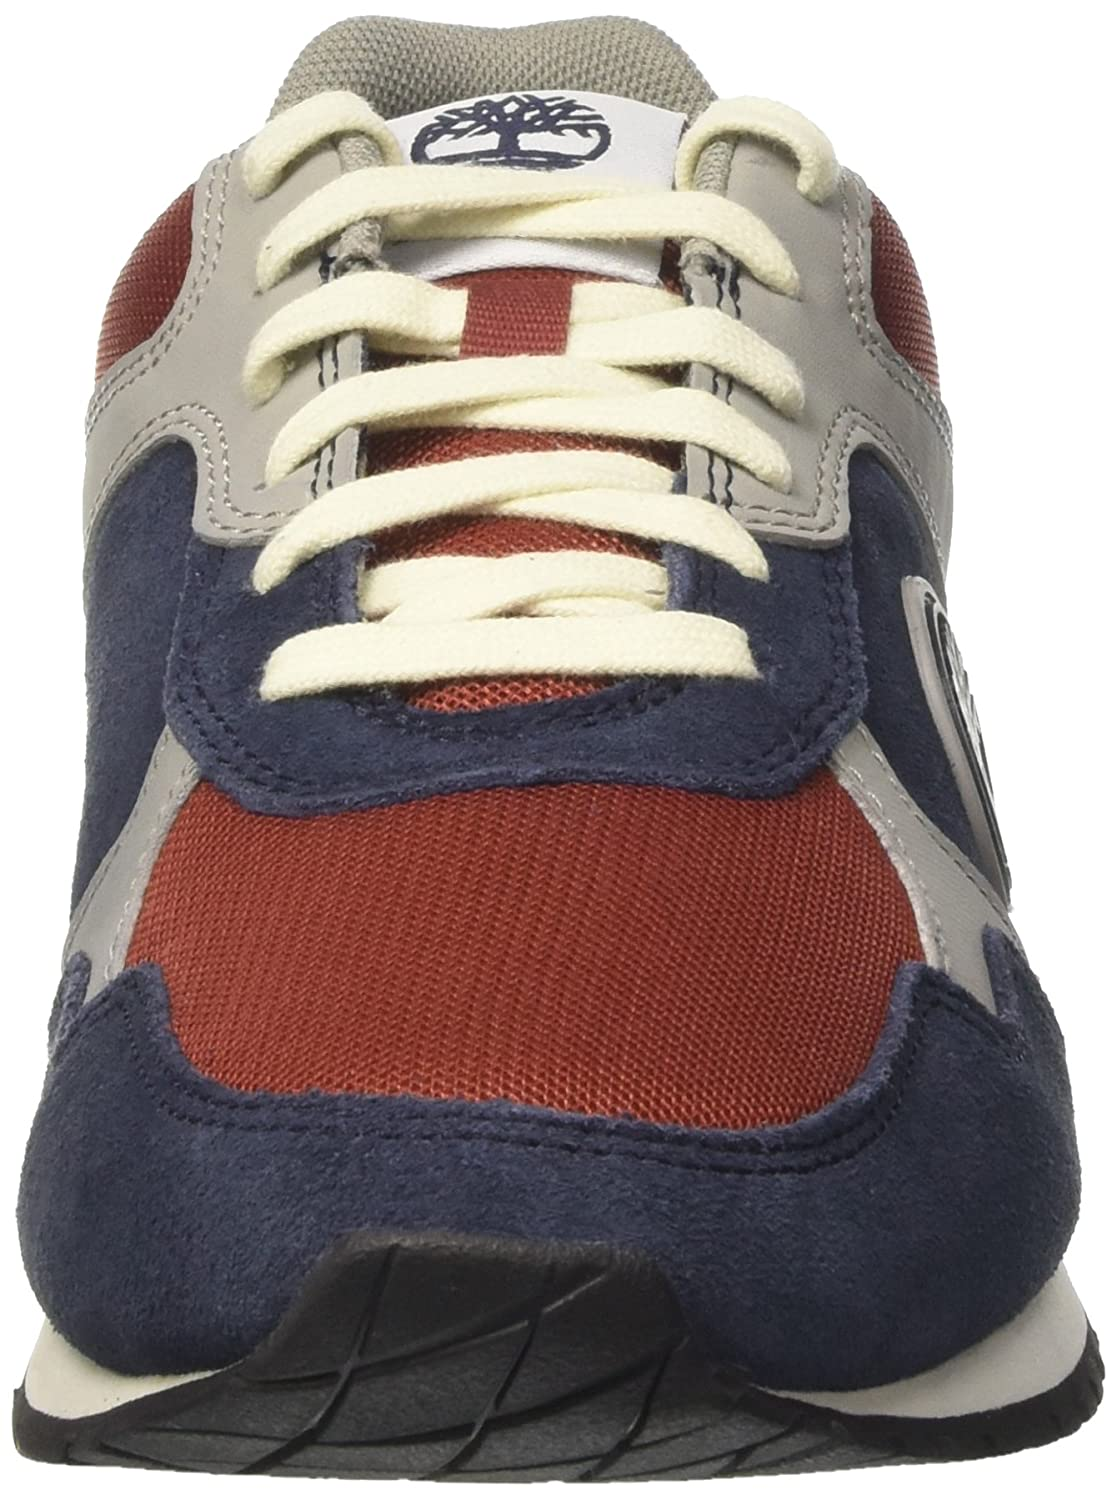 Timberland Retro Runner (Total Oxtotal Eclipse Oxtotal Hammer 19972 Suede,  Oxford Homme Multicolore (Total Eclipse Hammer Suede) ceb0f36 2279e3da031